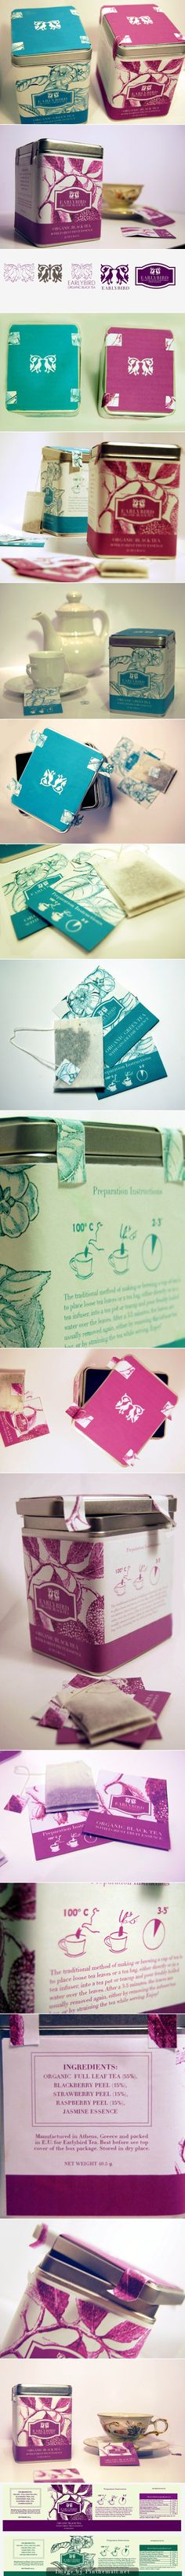 Lovely early bird organic tea packaging curated by Packaging Diva PD